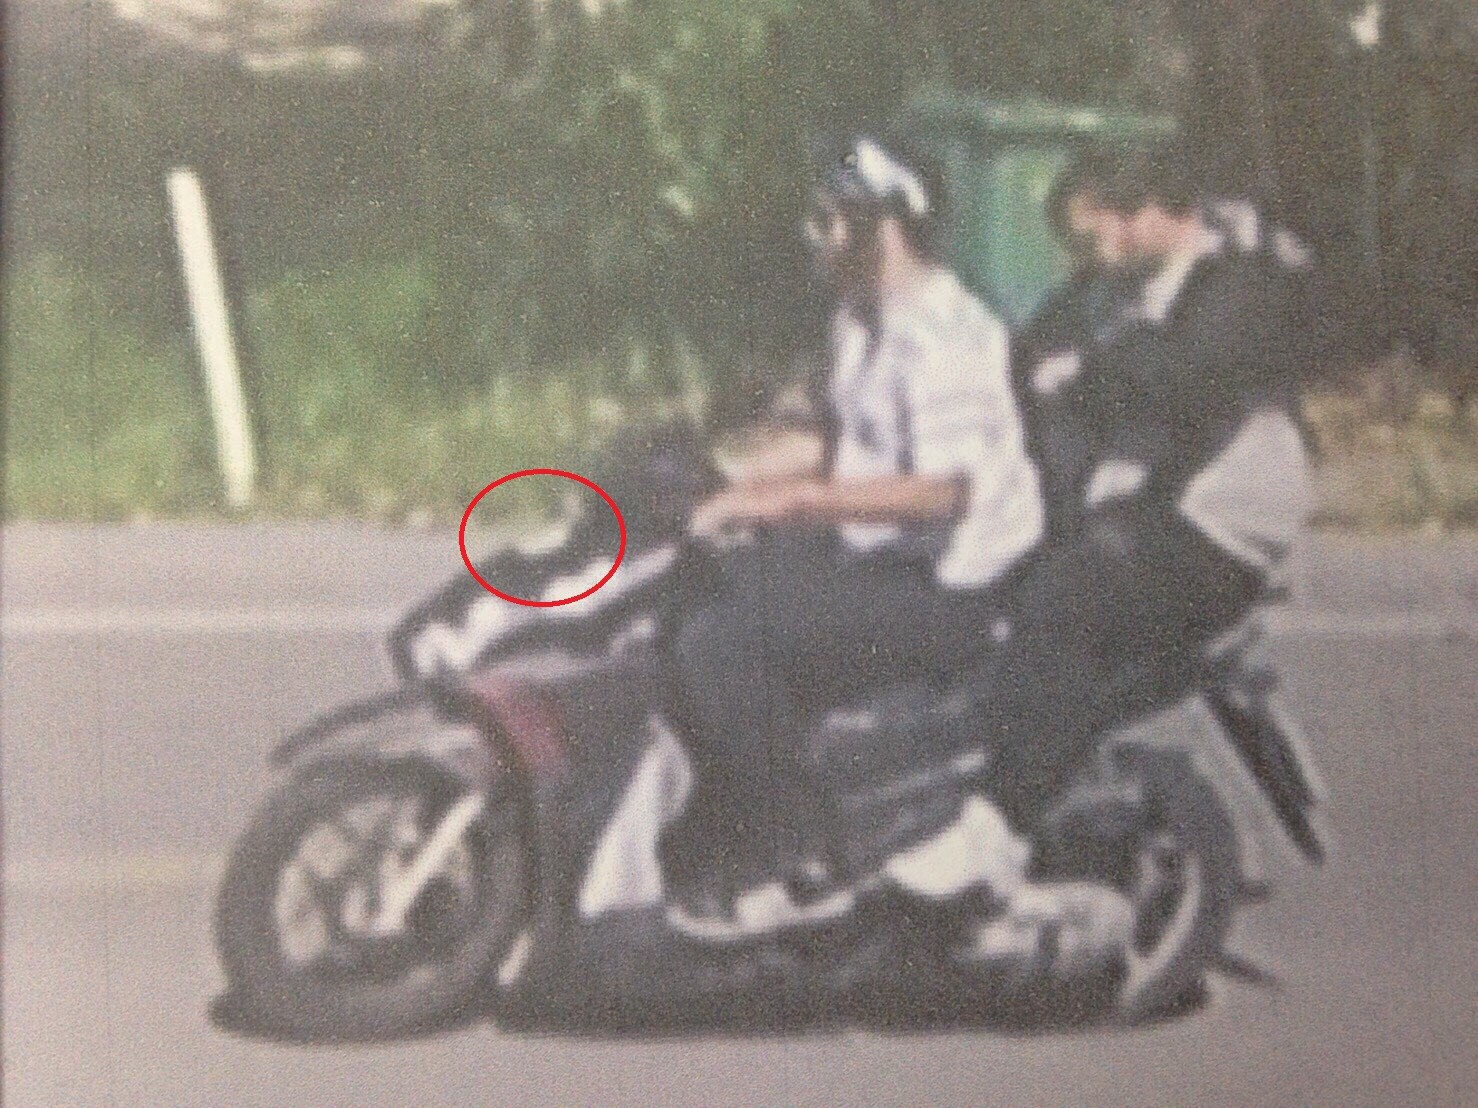 Thai police quickly identified the suspects by tracing the motorbike they rented using their original passports.